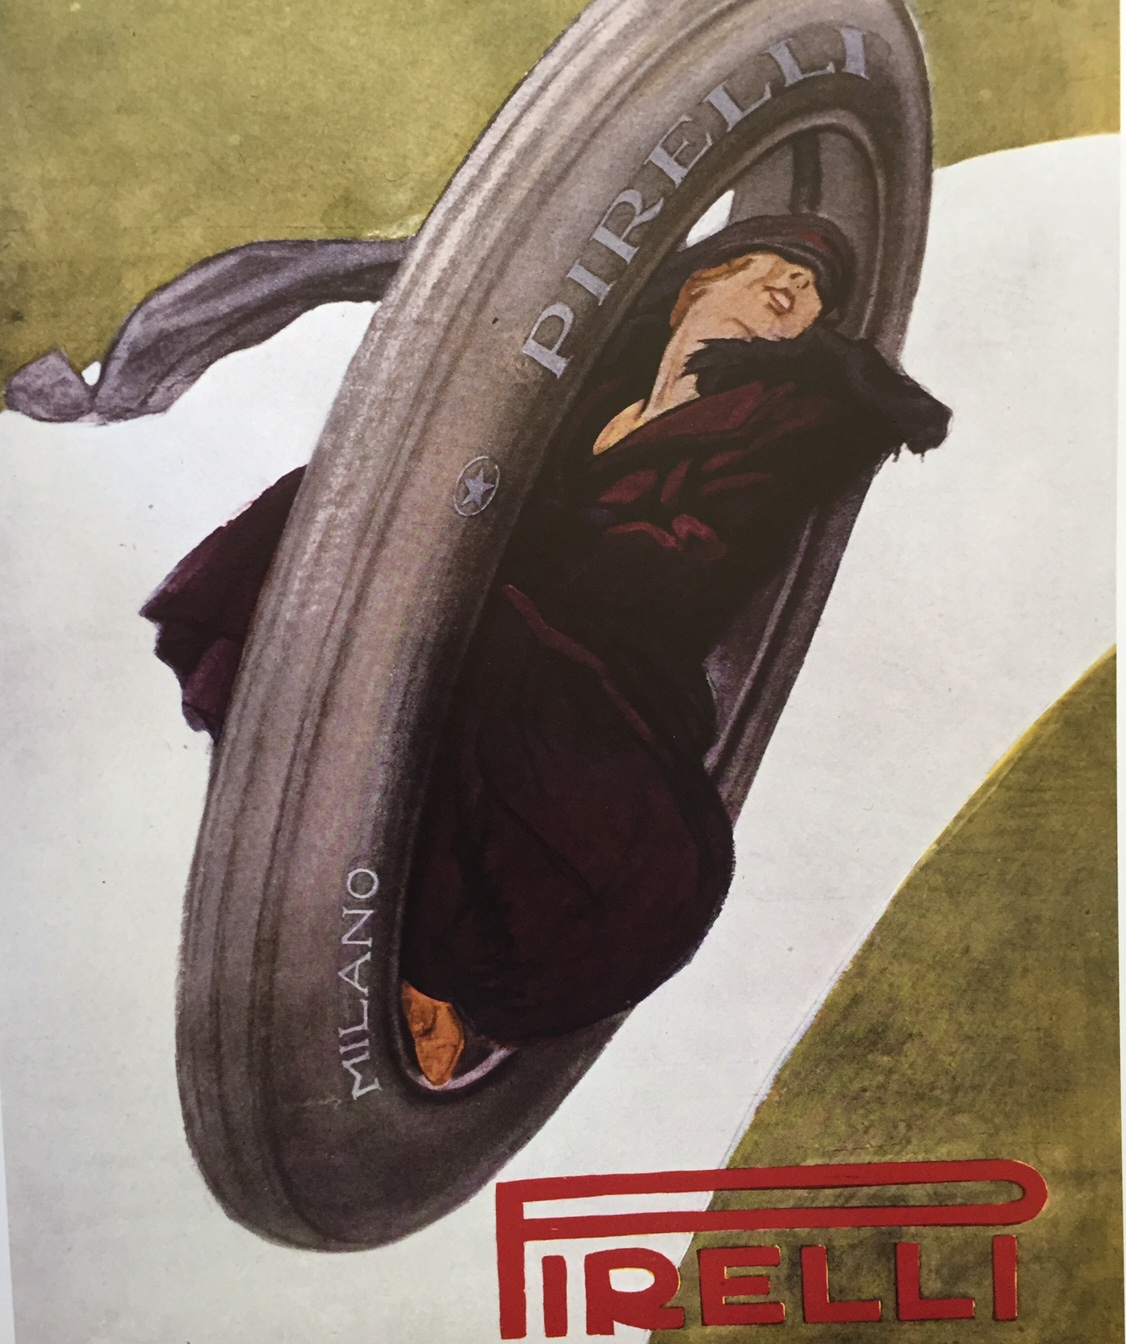 Marcello Dudovich, Advert for Pirelli tyres, 1919